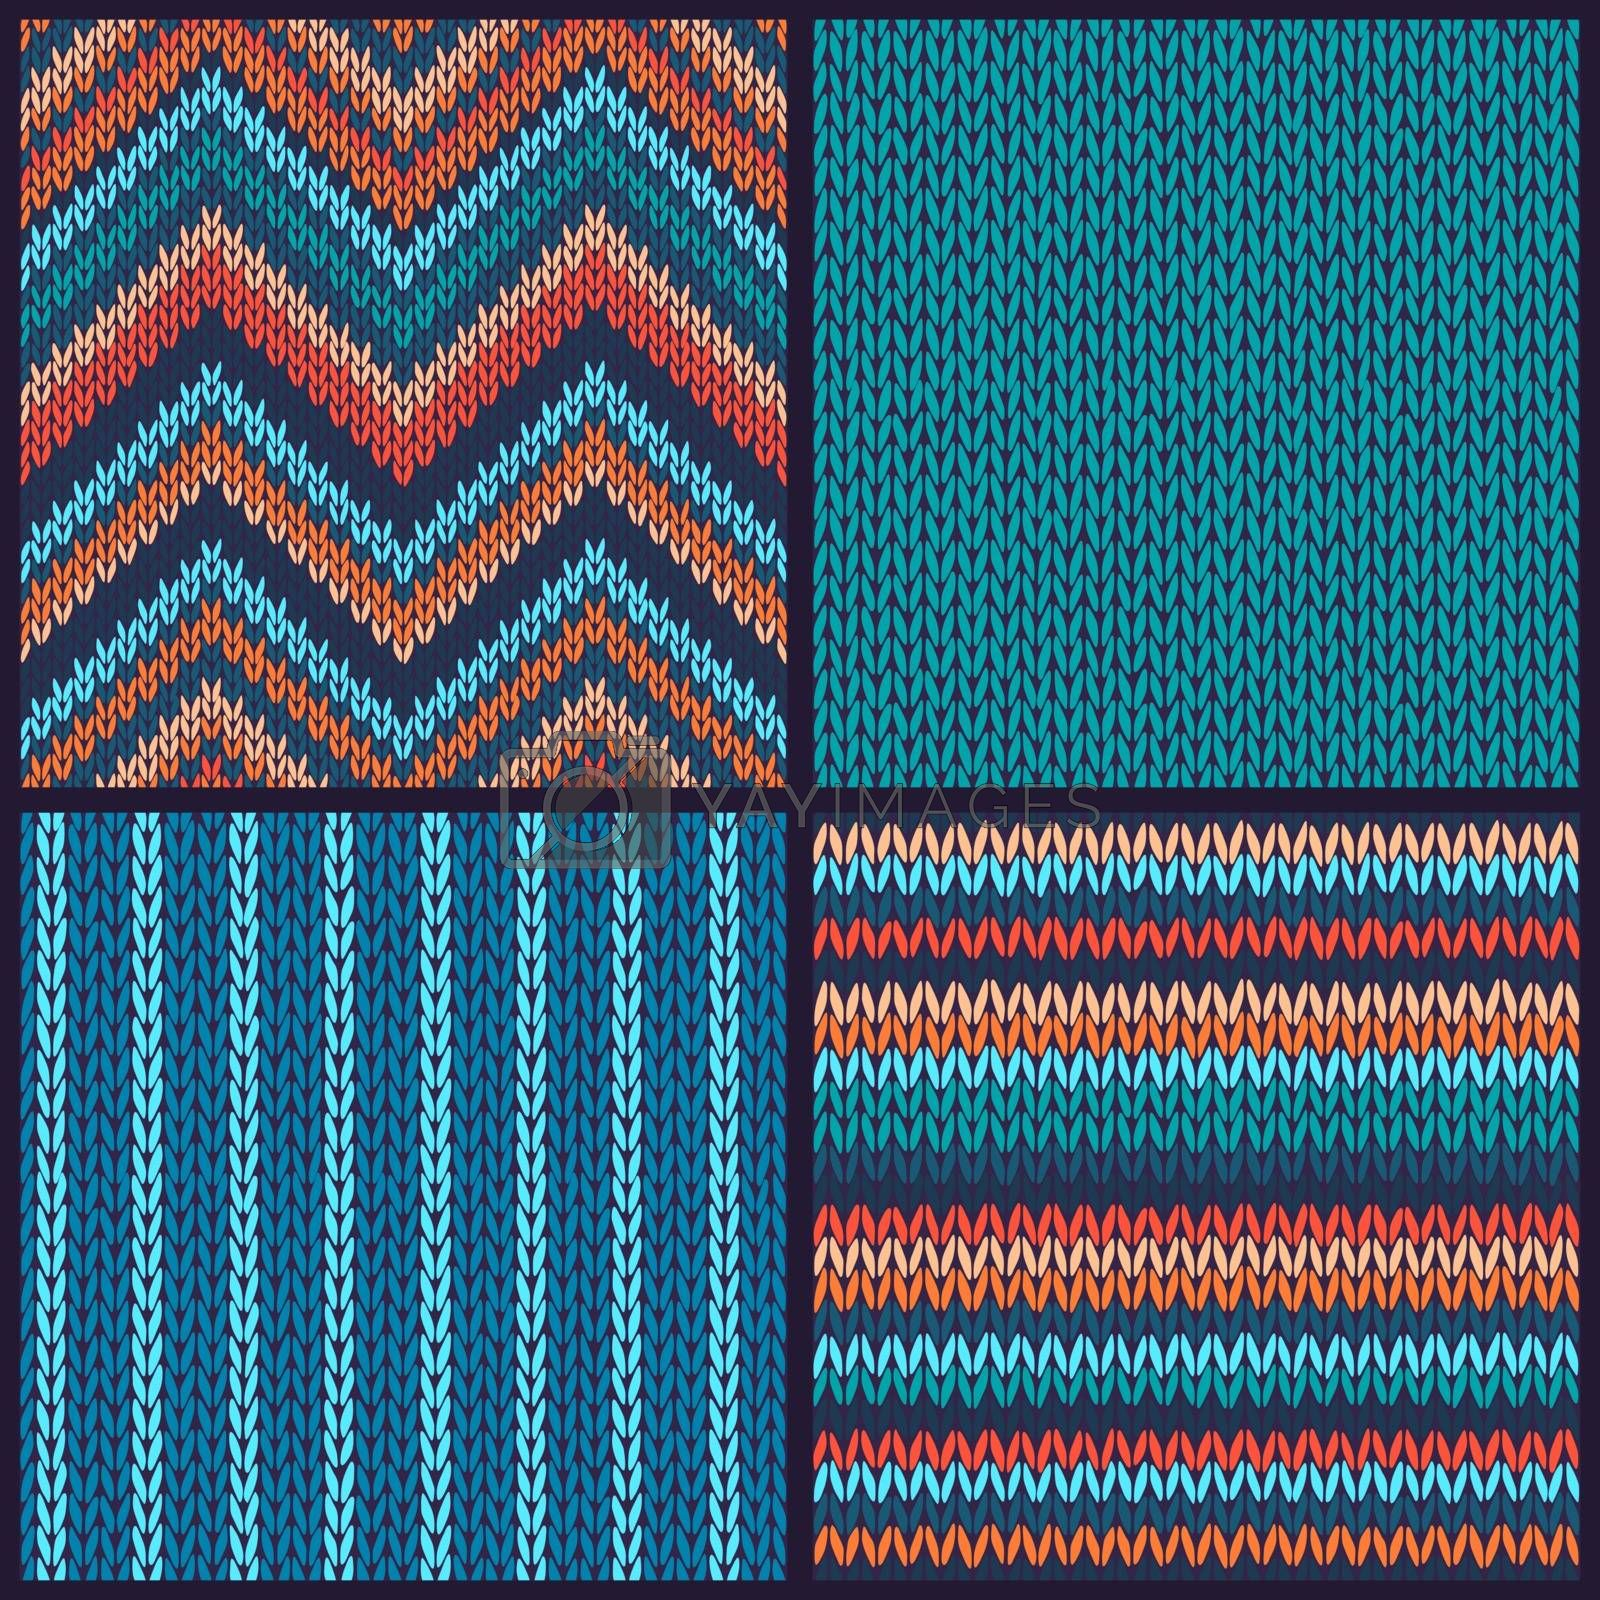 Seamless knitted pattern. Set of blue red orange white color backgrounds.